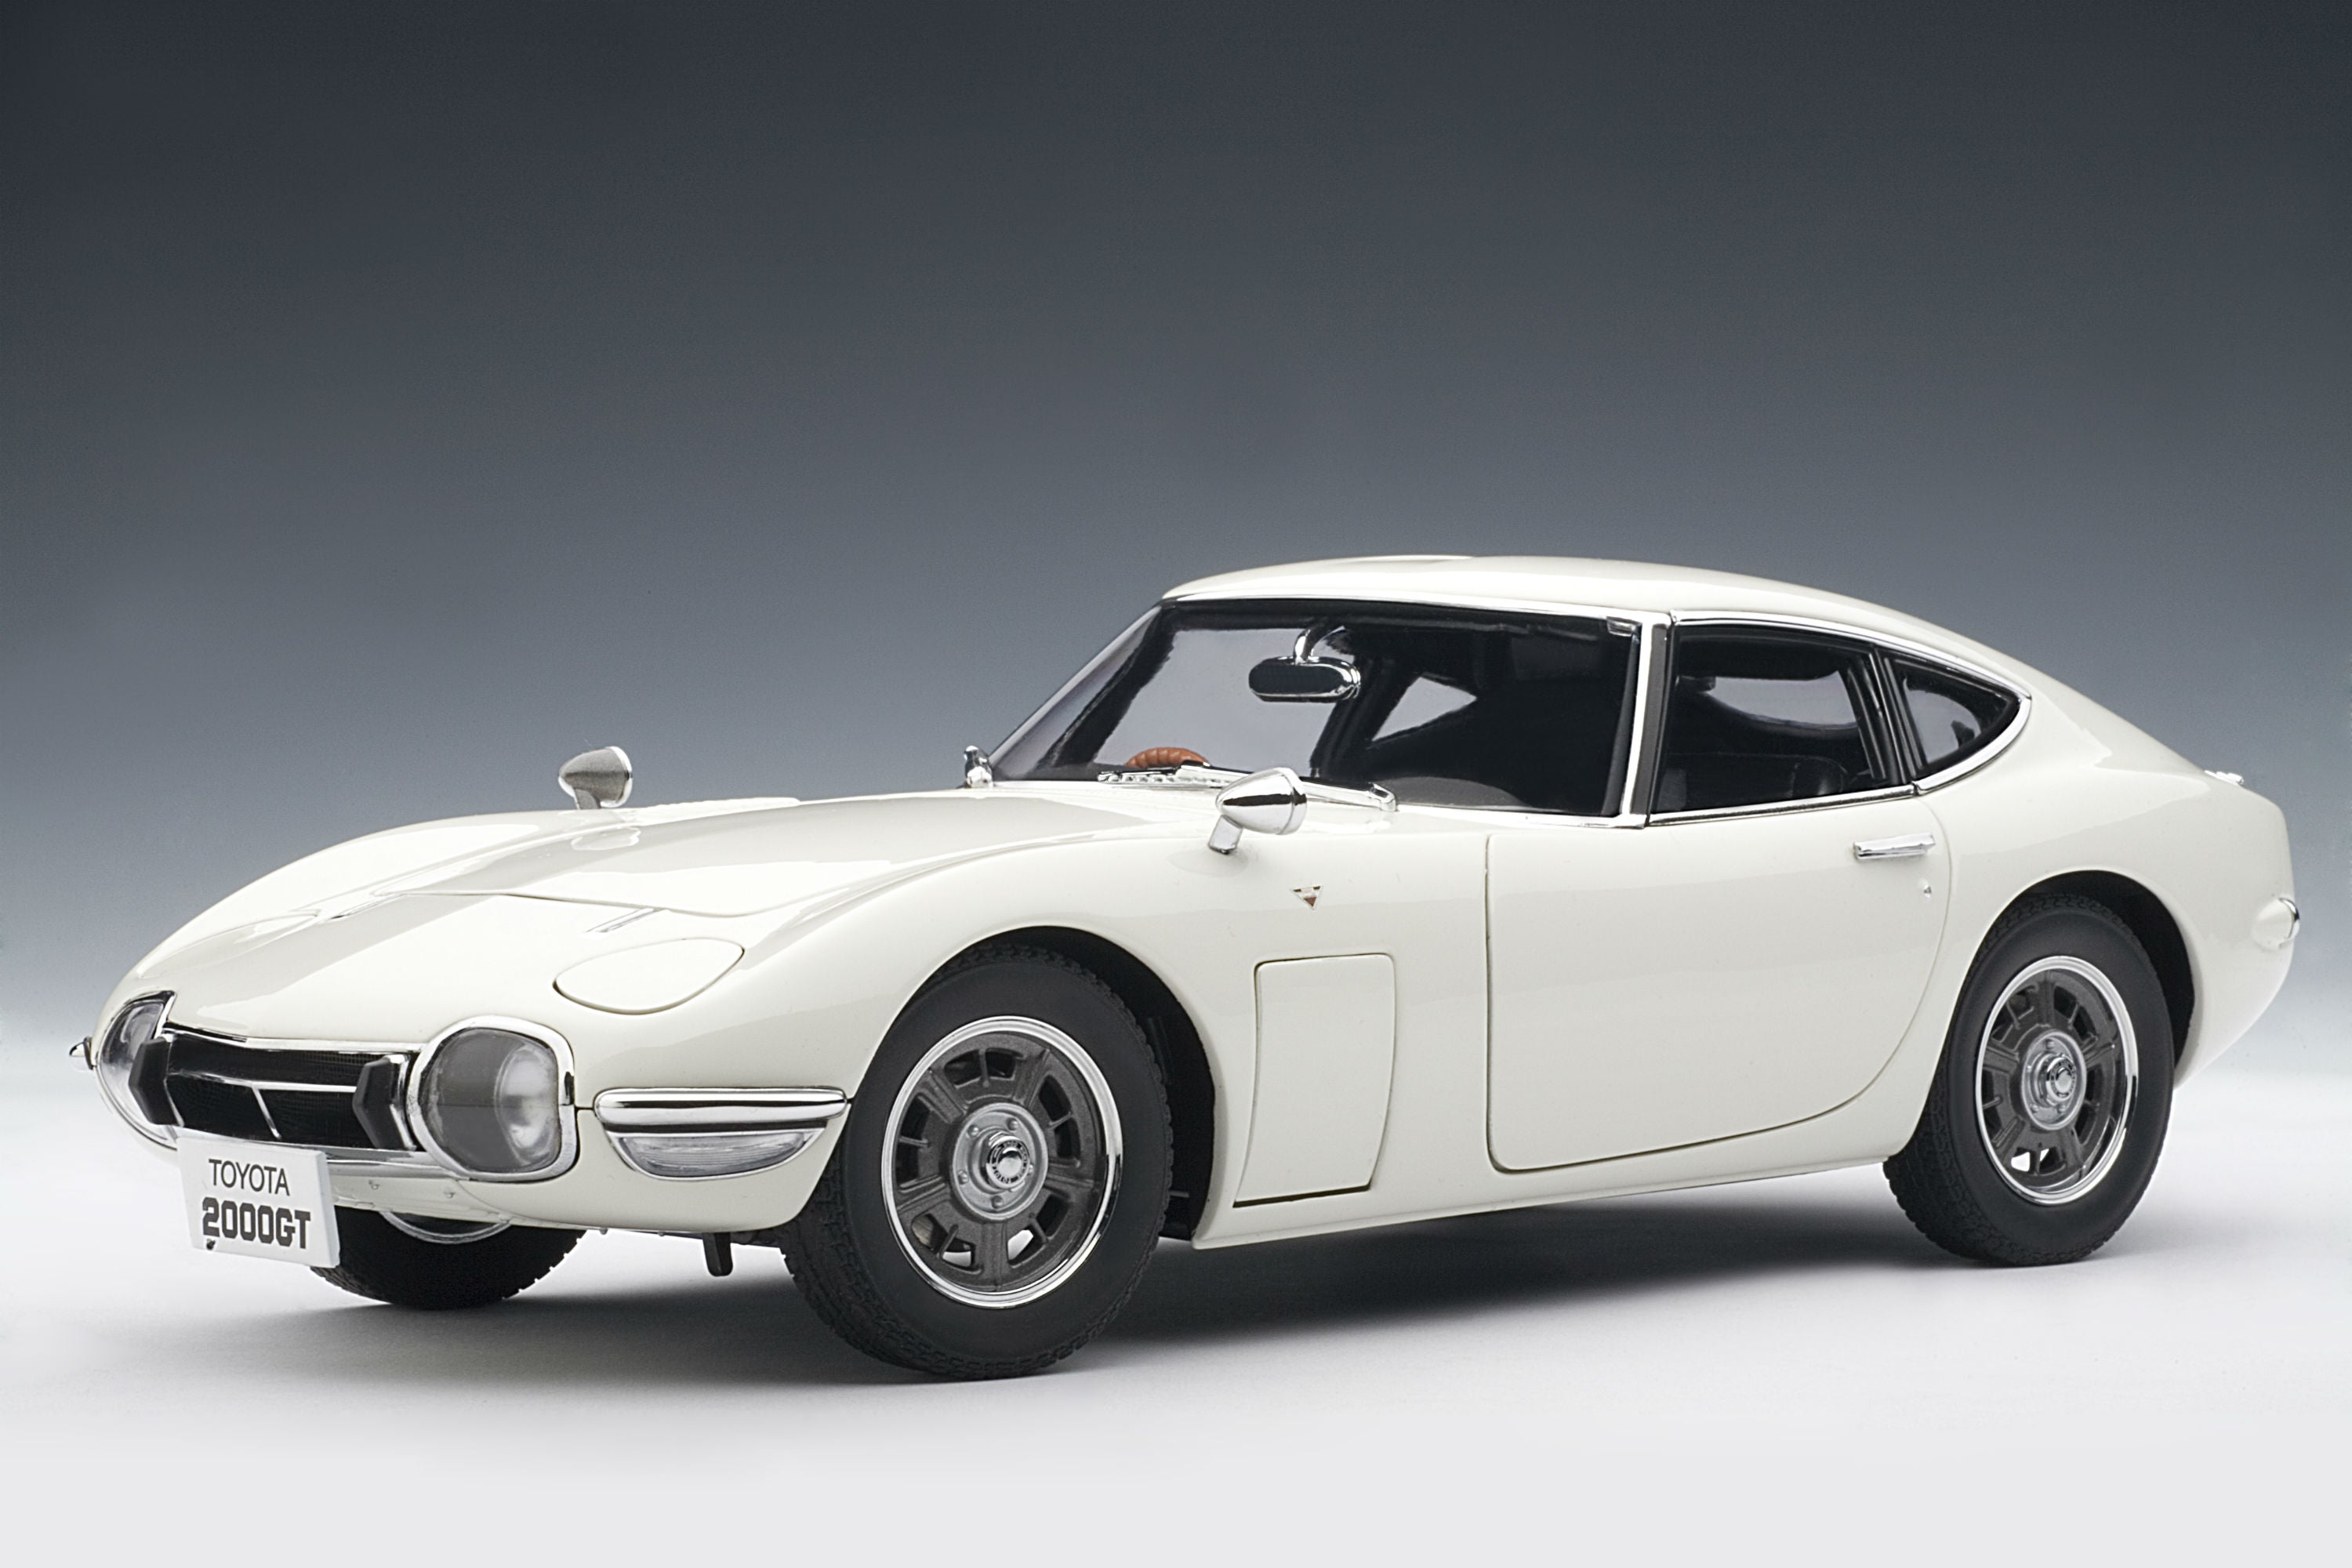 Toyota 2000GT (1967) - 1:18 Scale Model Car